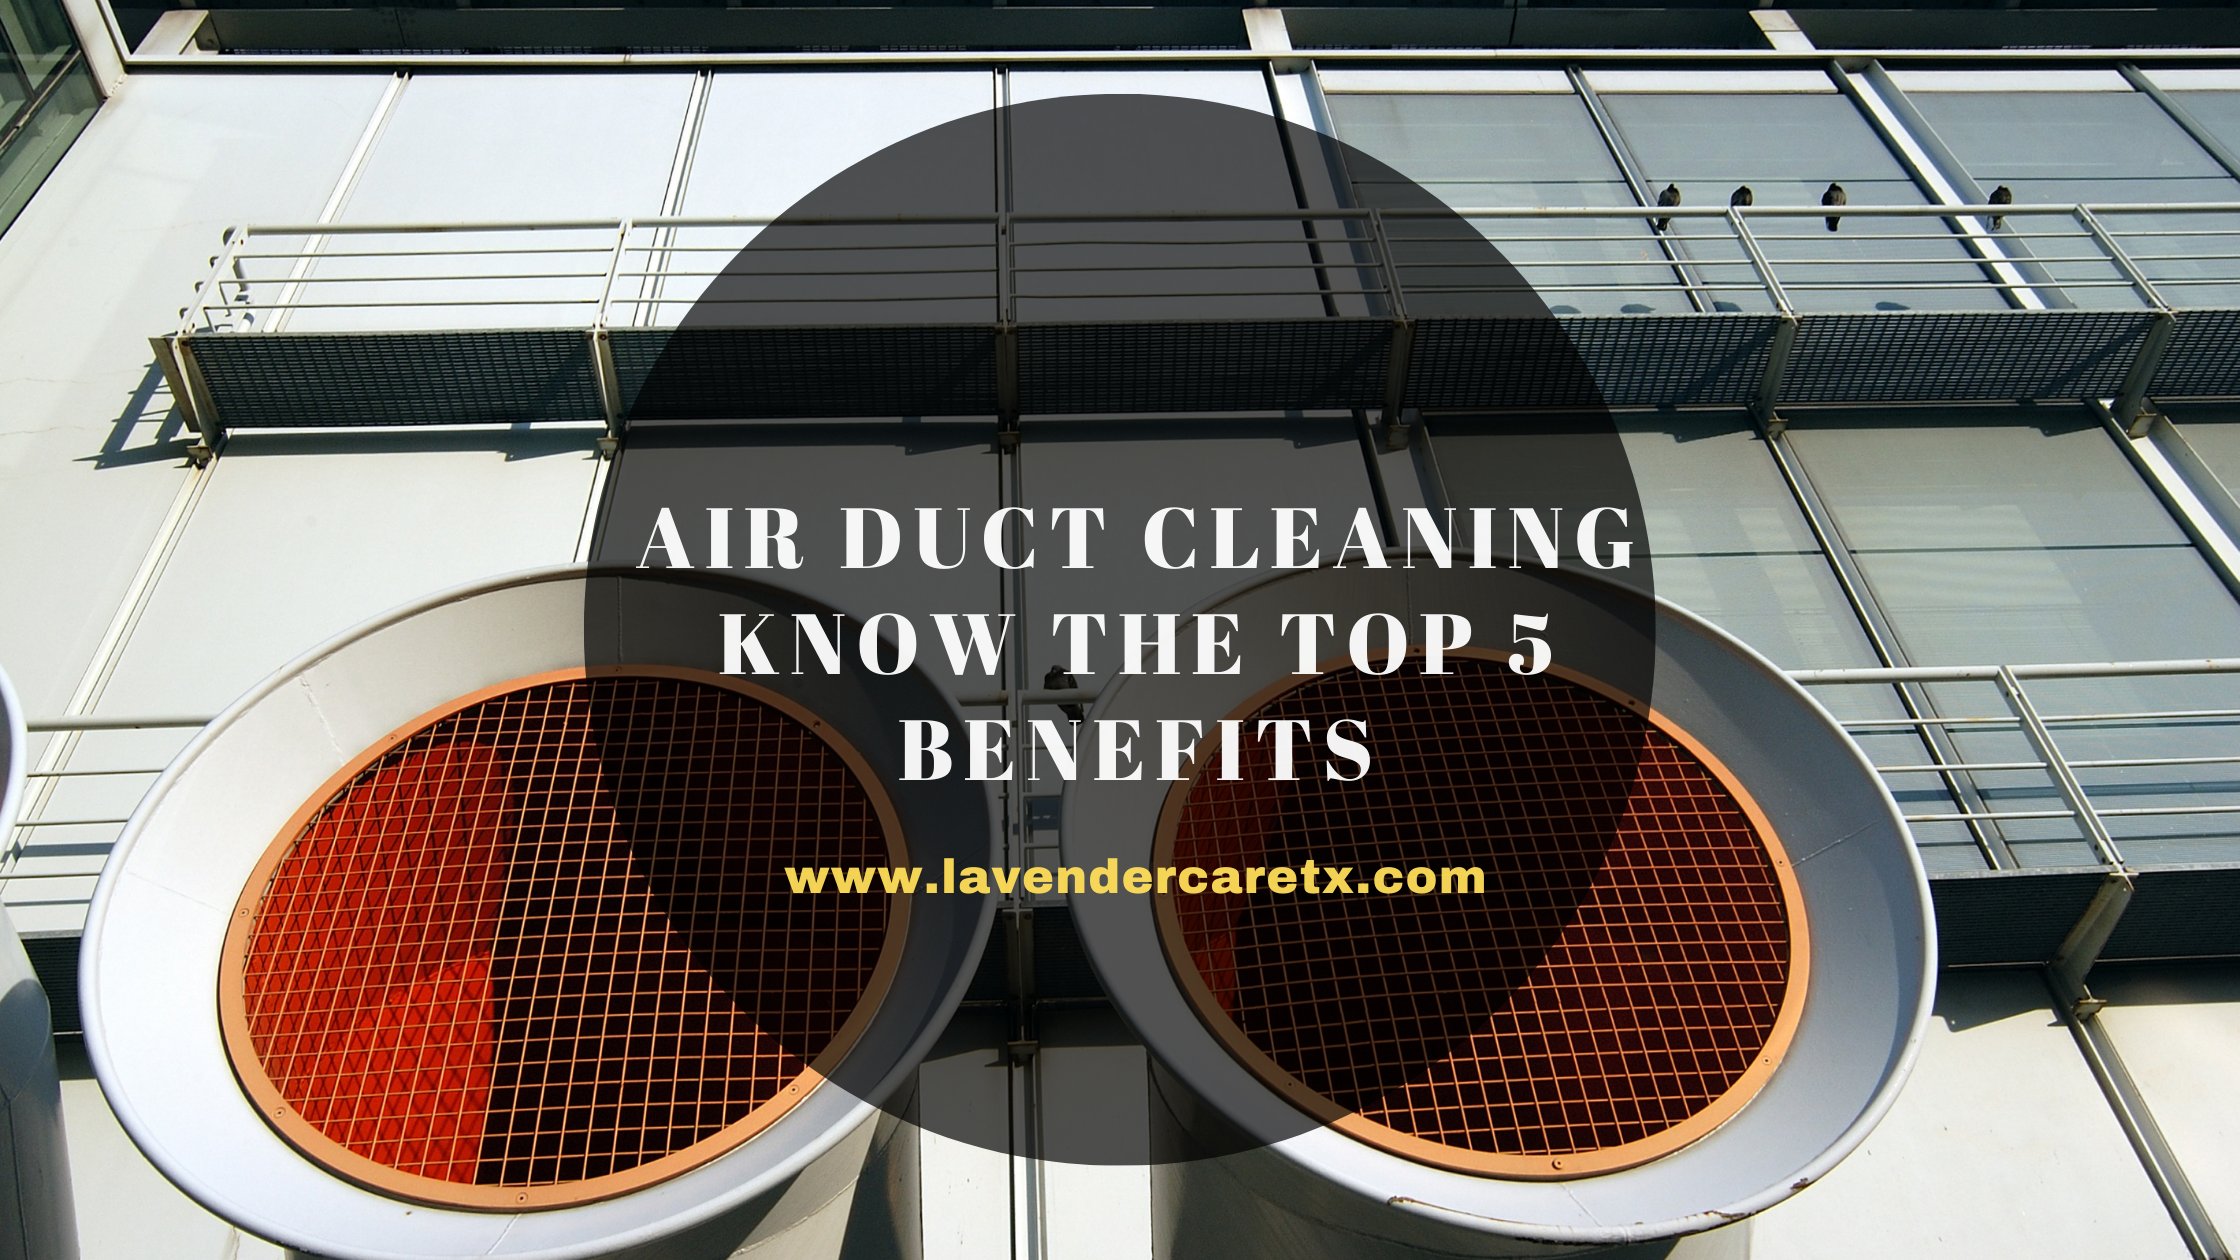 Air Duct Cleaning Know The Top 5 Benefits